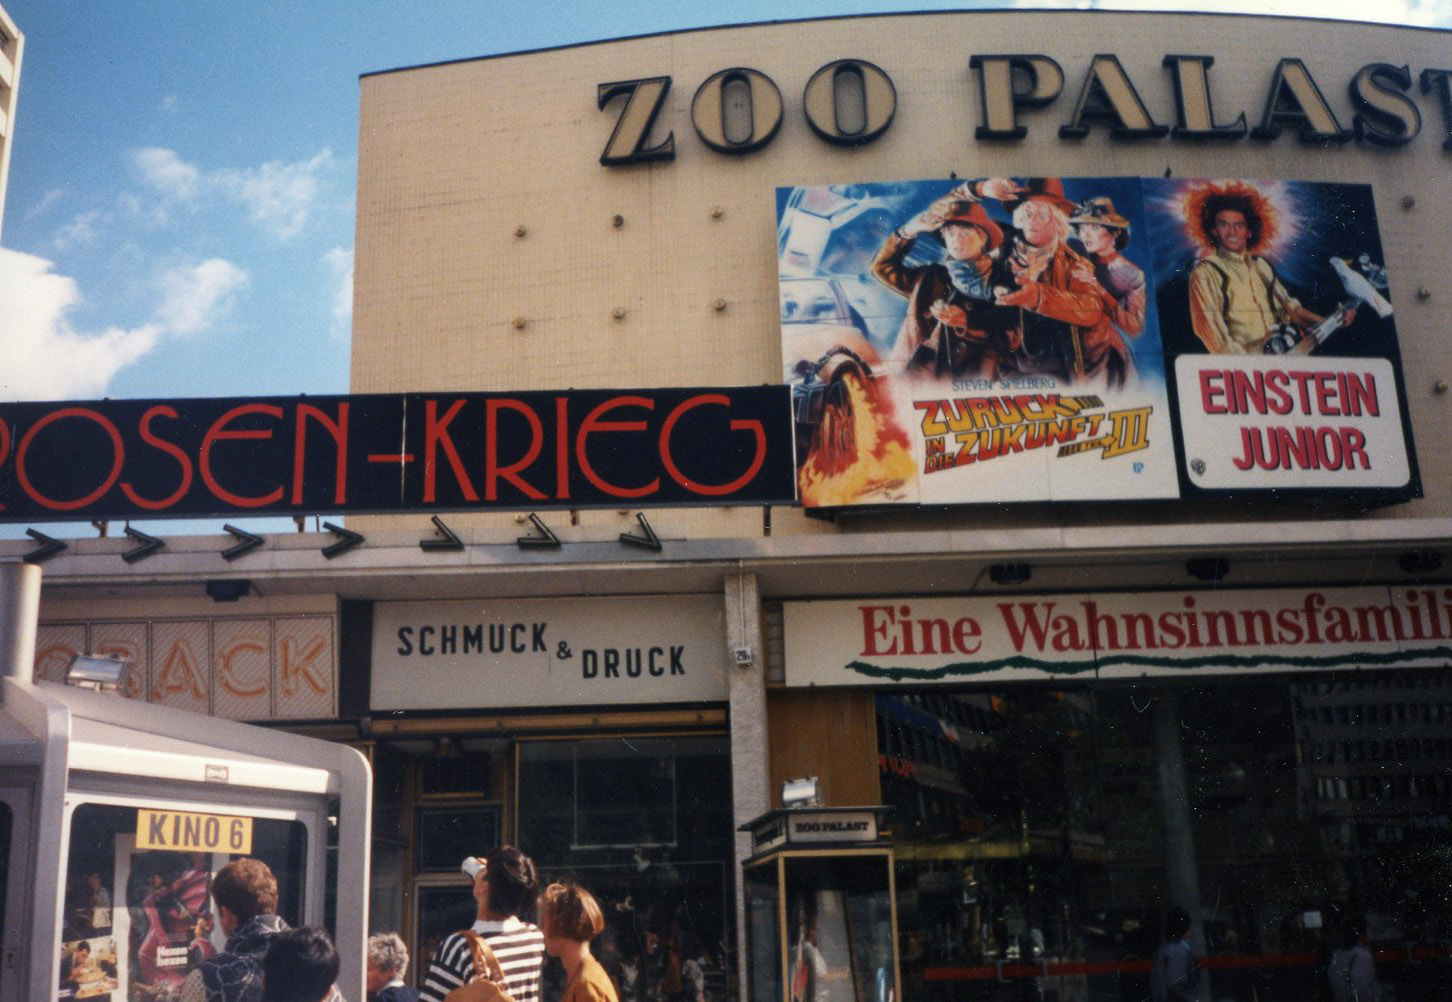 Berlin movie theater marquee in July 1990 - Back to the Future 3 and Young Einstein